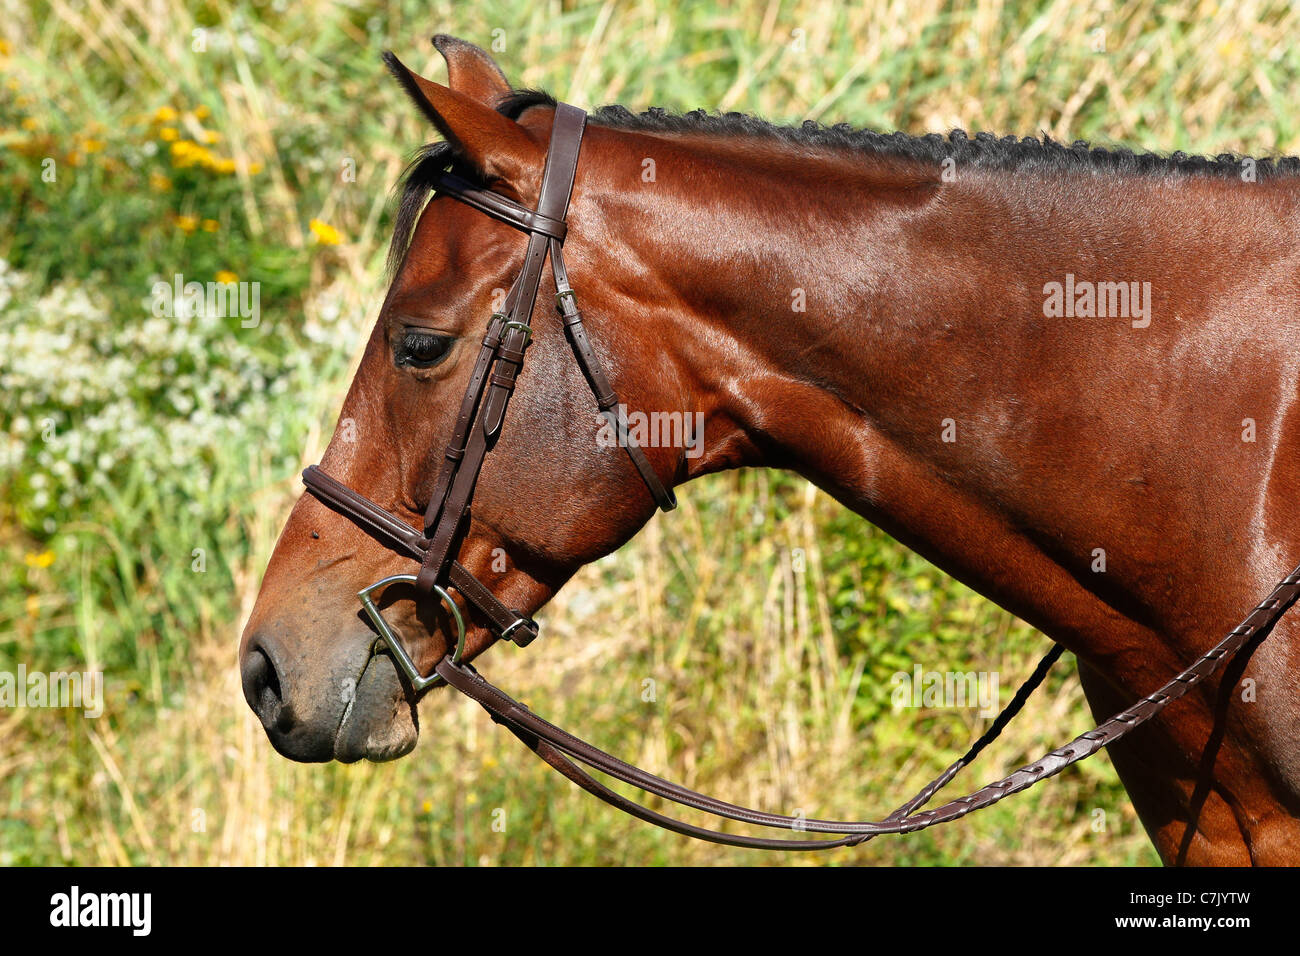 Head and neck of a shiny bay thoroughbred horse wearing bridle and with braided mane - Stock Image